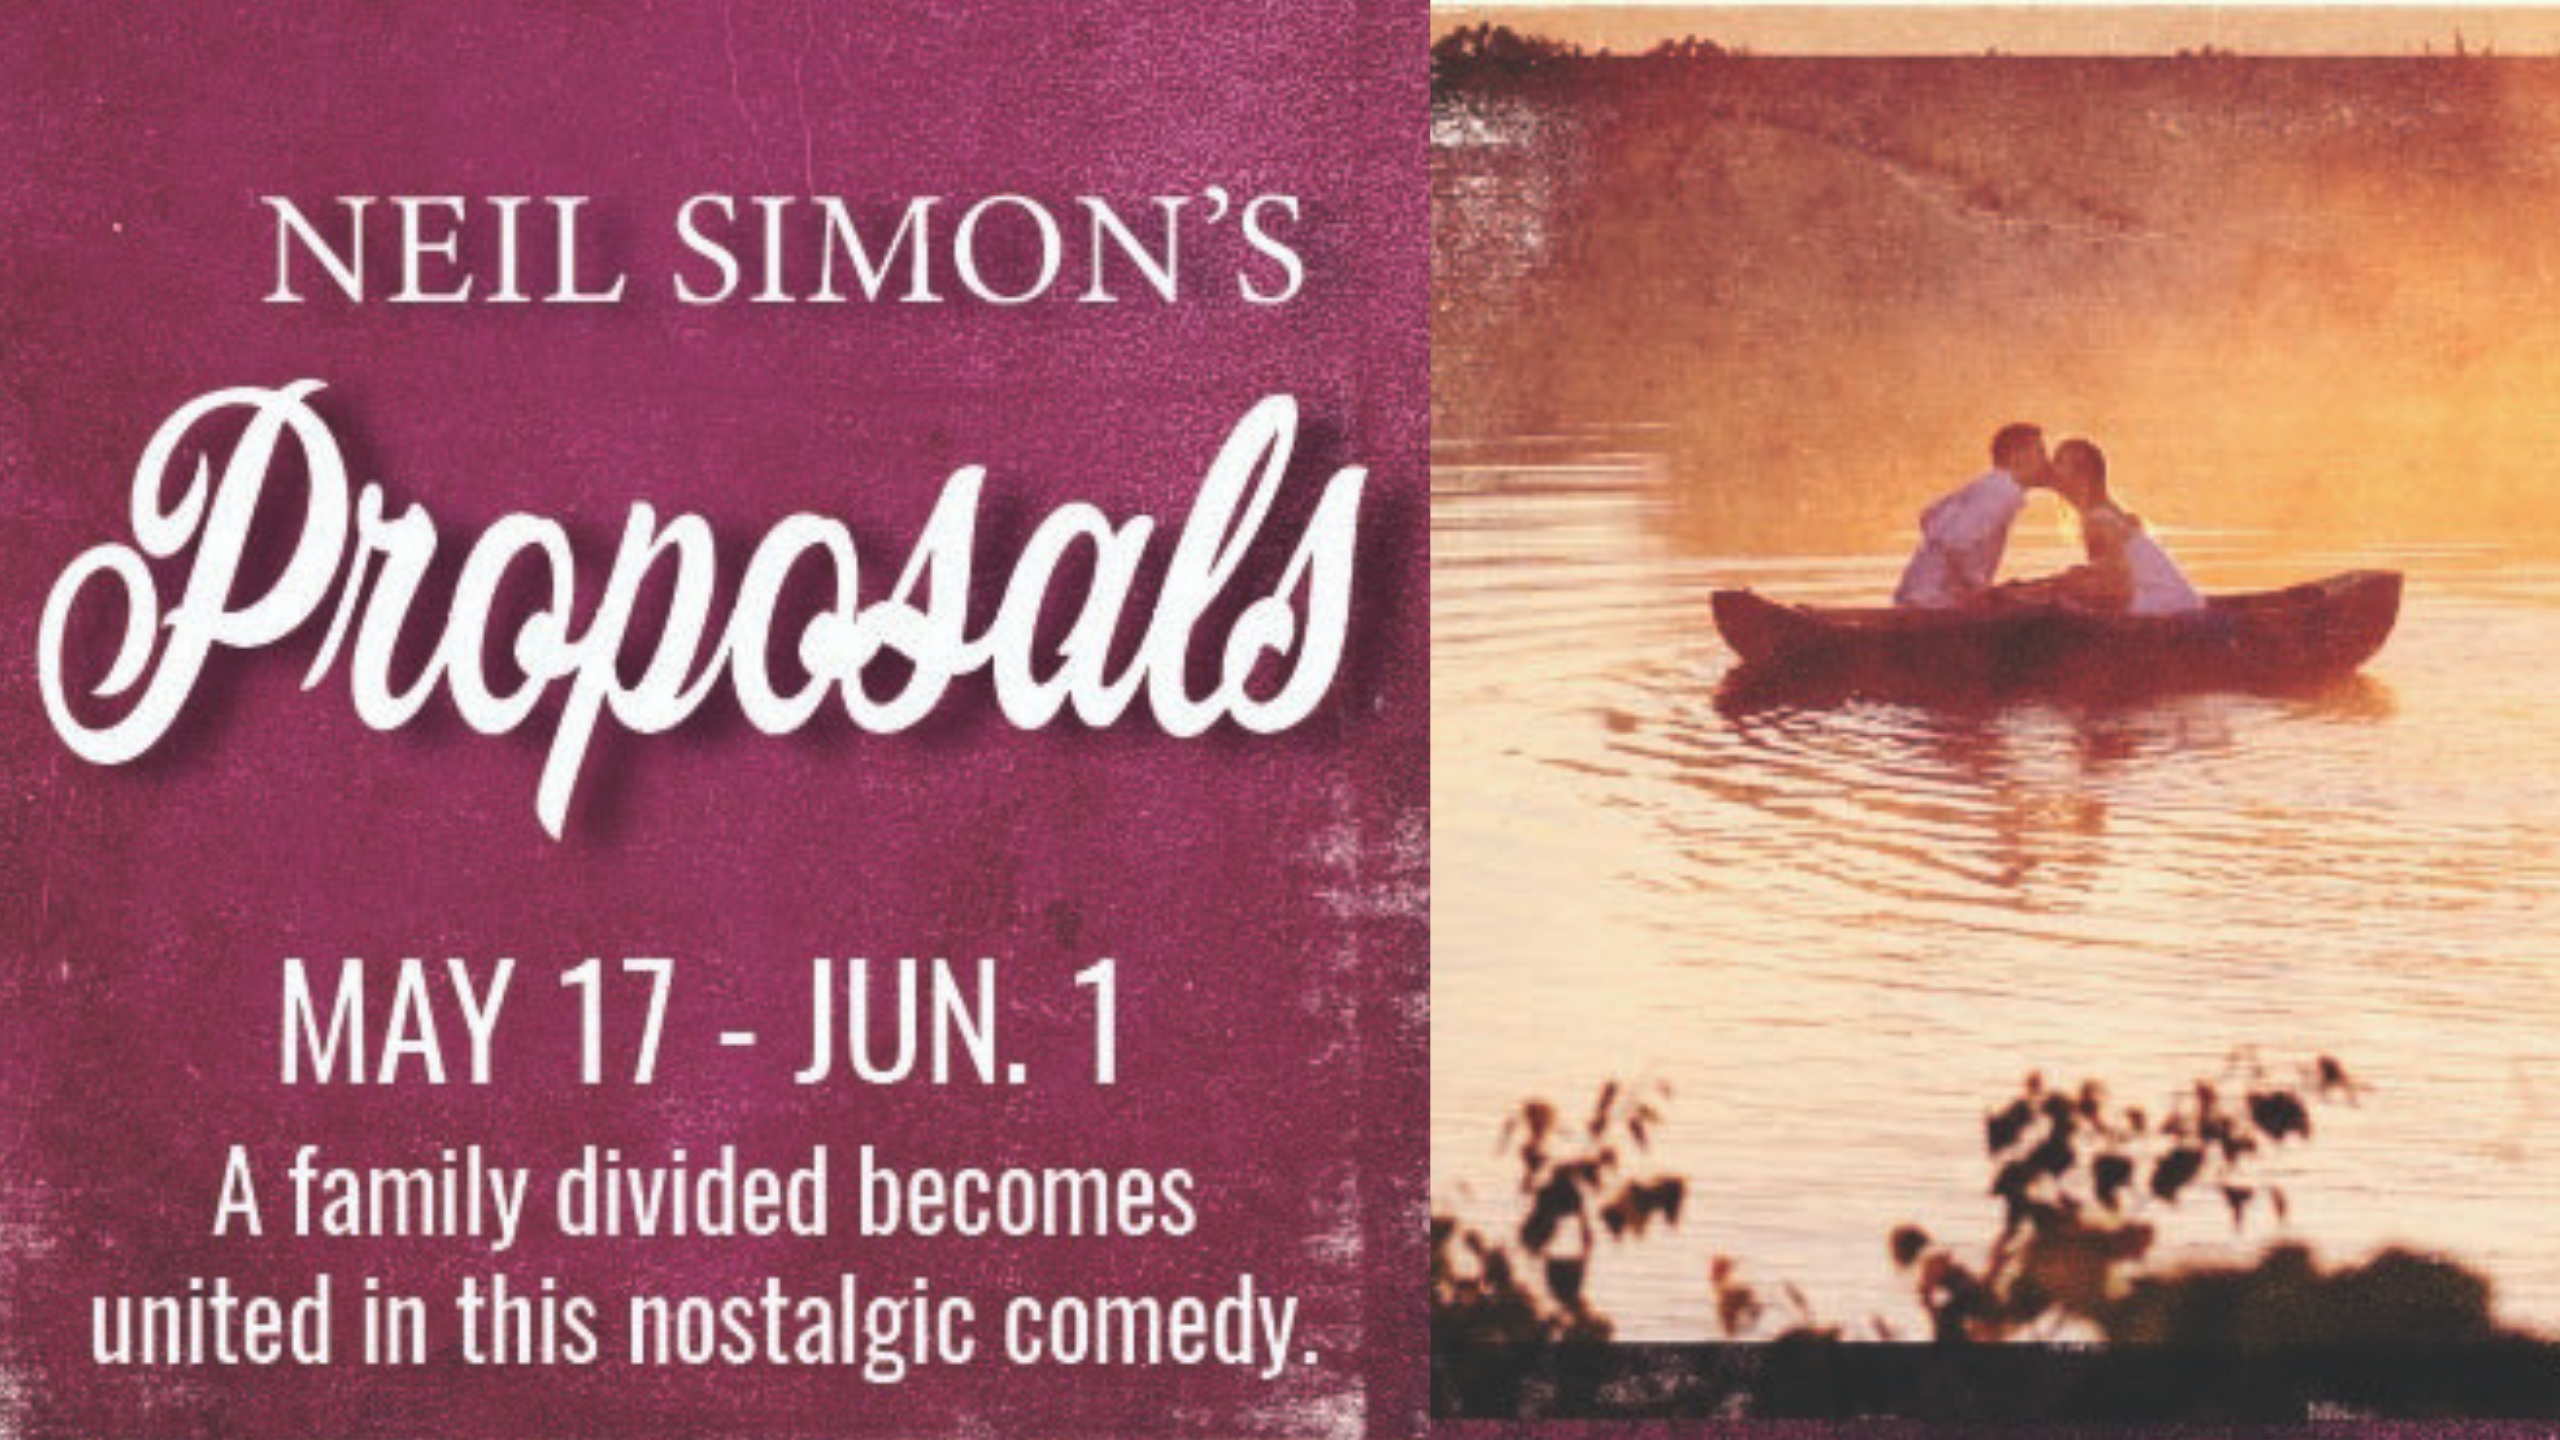 Neil Simon's Proposals